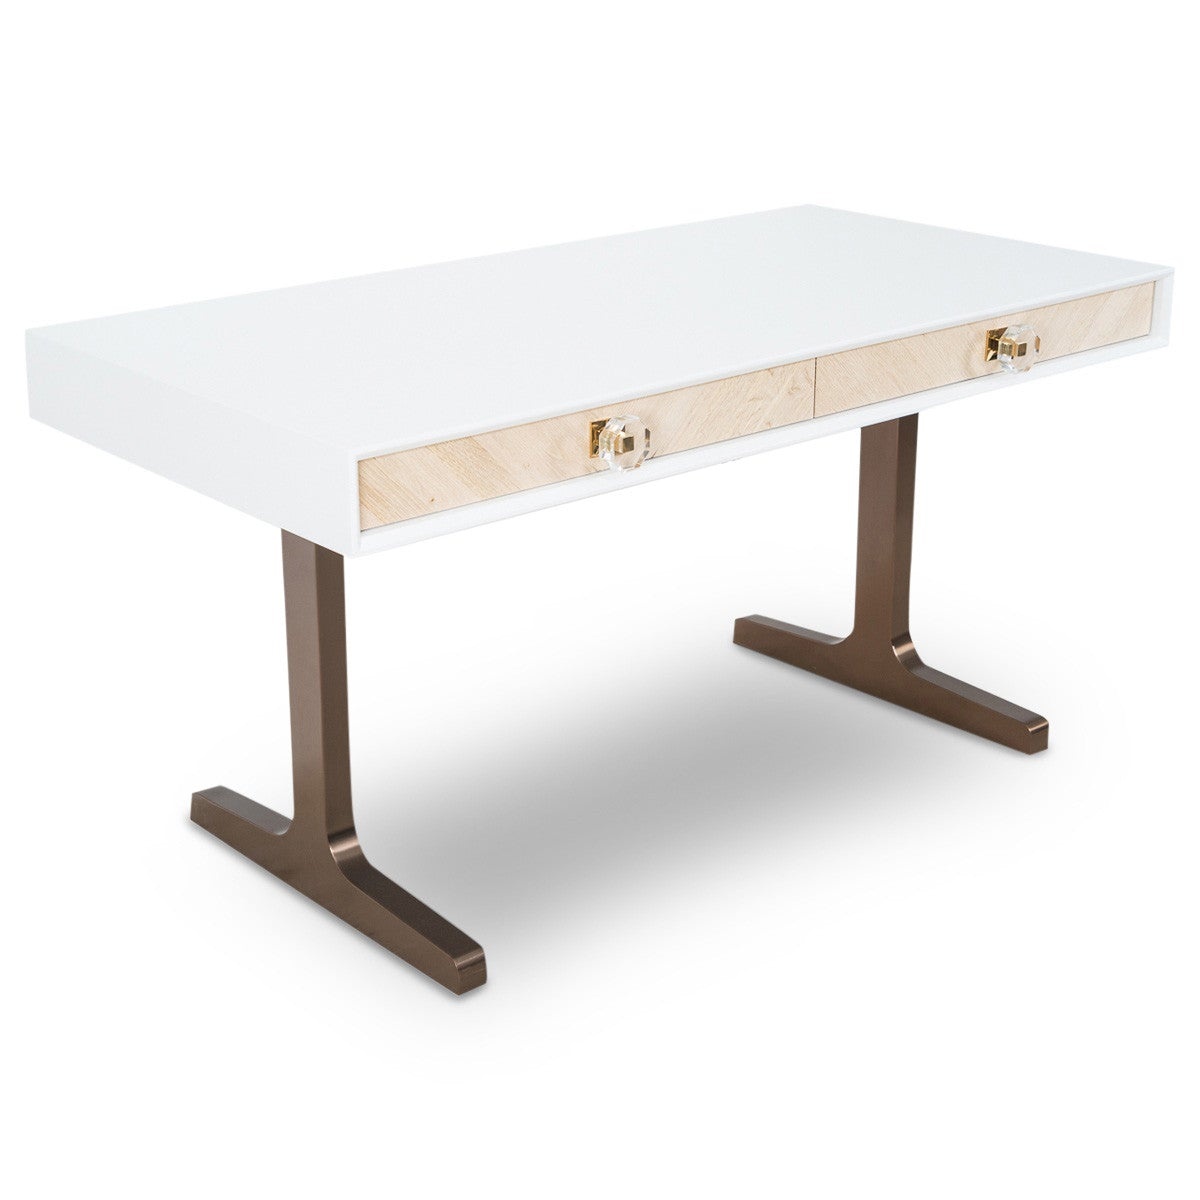 Sicily Desk with Brushed Copper T-Legs - ModShop1.com